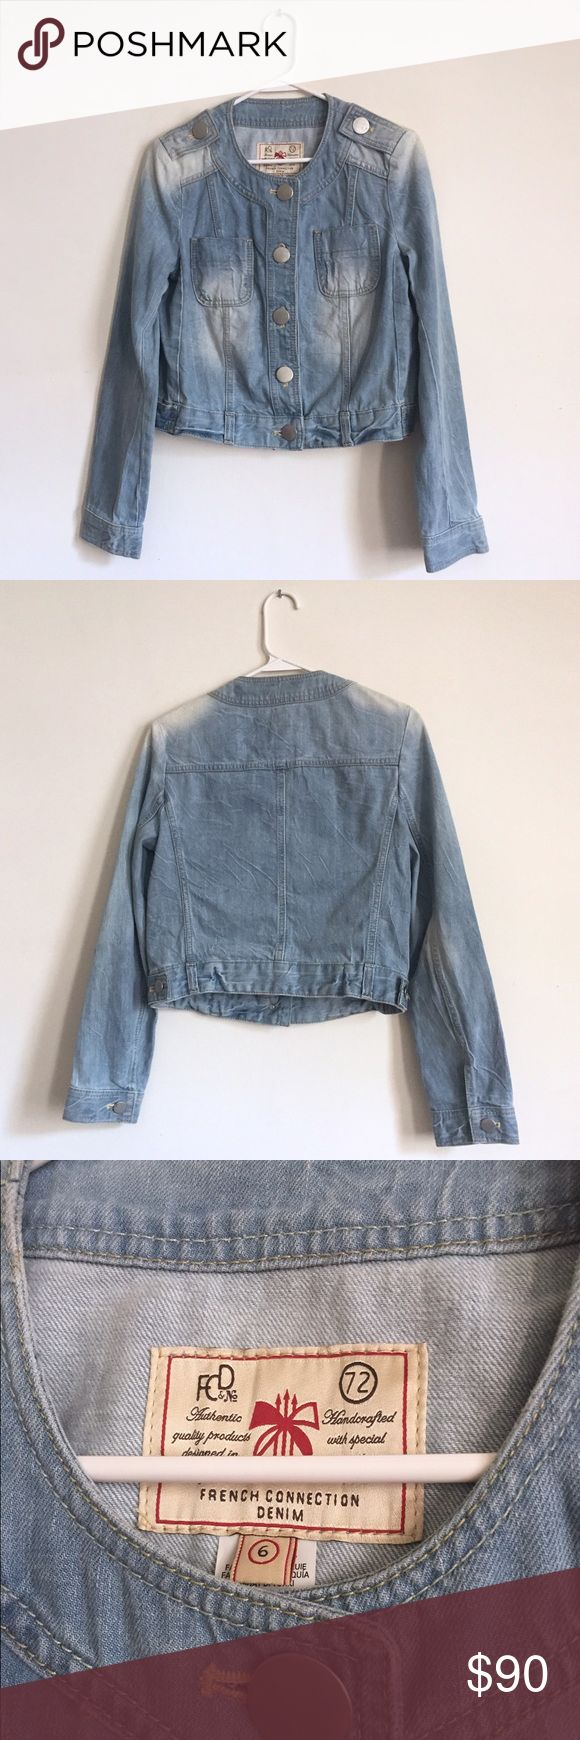 "French Connection Cropped Collarless Denim Jacket A denim jacket is always the perfect addition to any outfit! It never goes out of style- and especially with the resurgence of 90's fashion, this one is perfect. No foldable collar. Light denim with some distressing by design and fading, also by design. Large flat silver buttons down the front on shoulders and on sleeves. Great condition. 18.5"" long. Sleeves: 23.5"" long. French Connection Jackets & Coats"